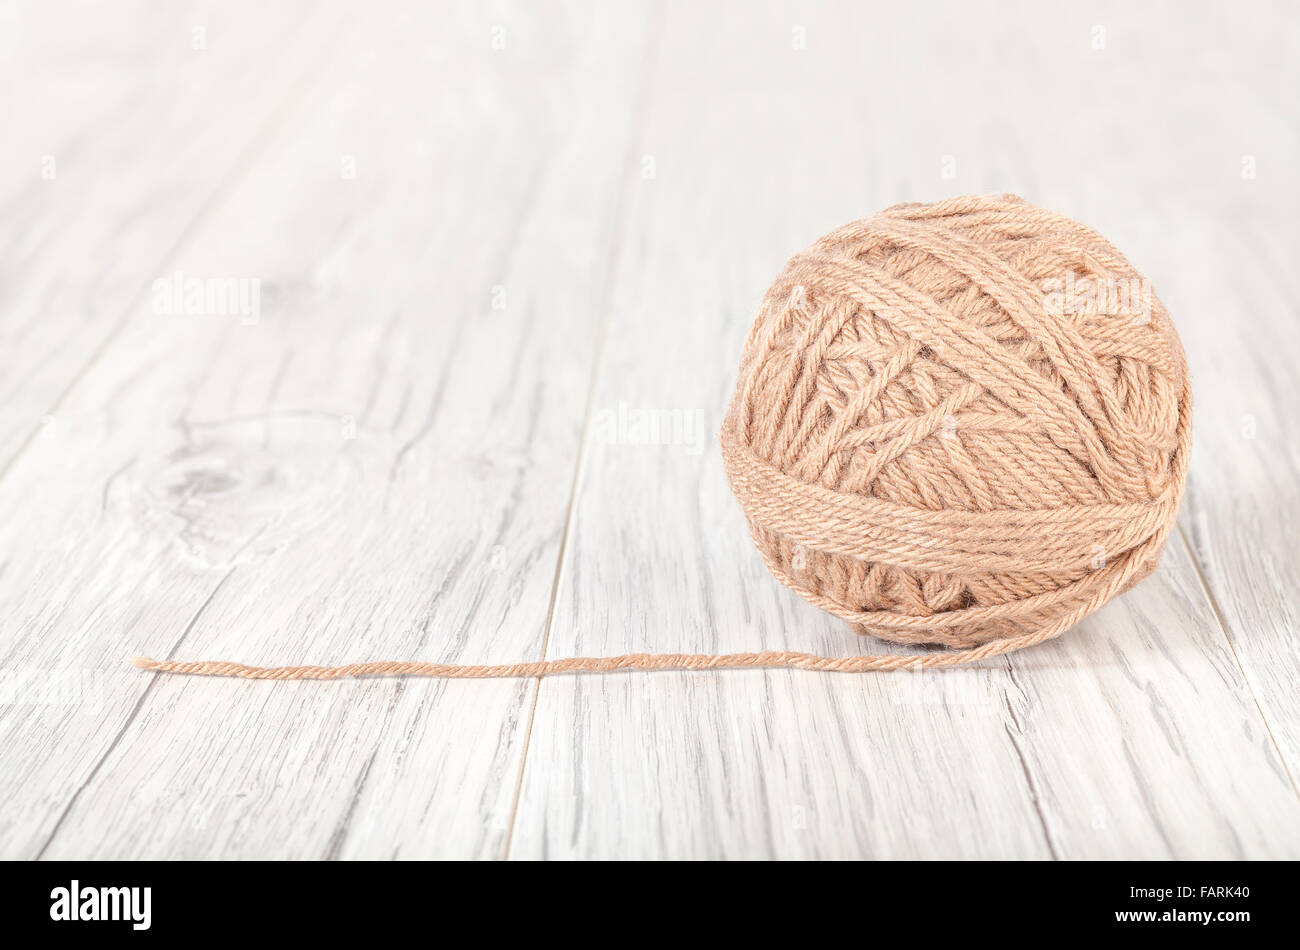 Wool ball on a white wooden background. - Stock Image